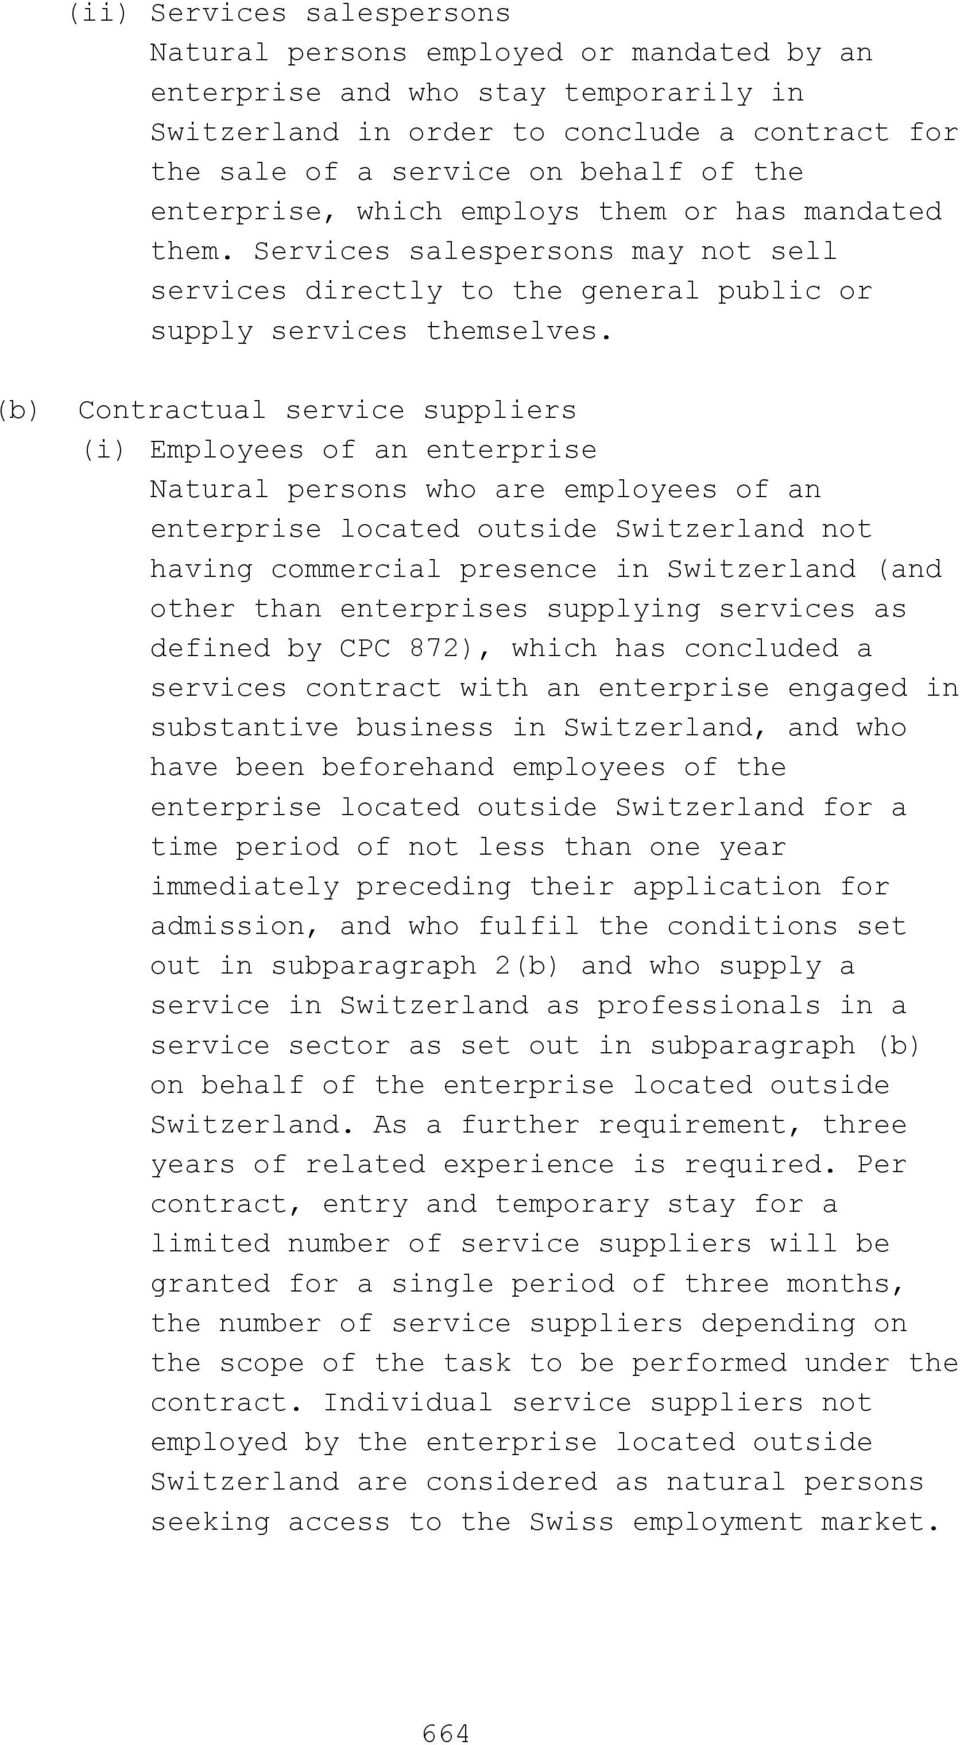 (b) Contractual service suppliers (i) Employees of an enterprise Natural persons who are employees of an enterprise located outside Switzerland not having commercial presence in Switzerland (and